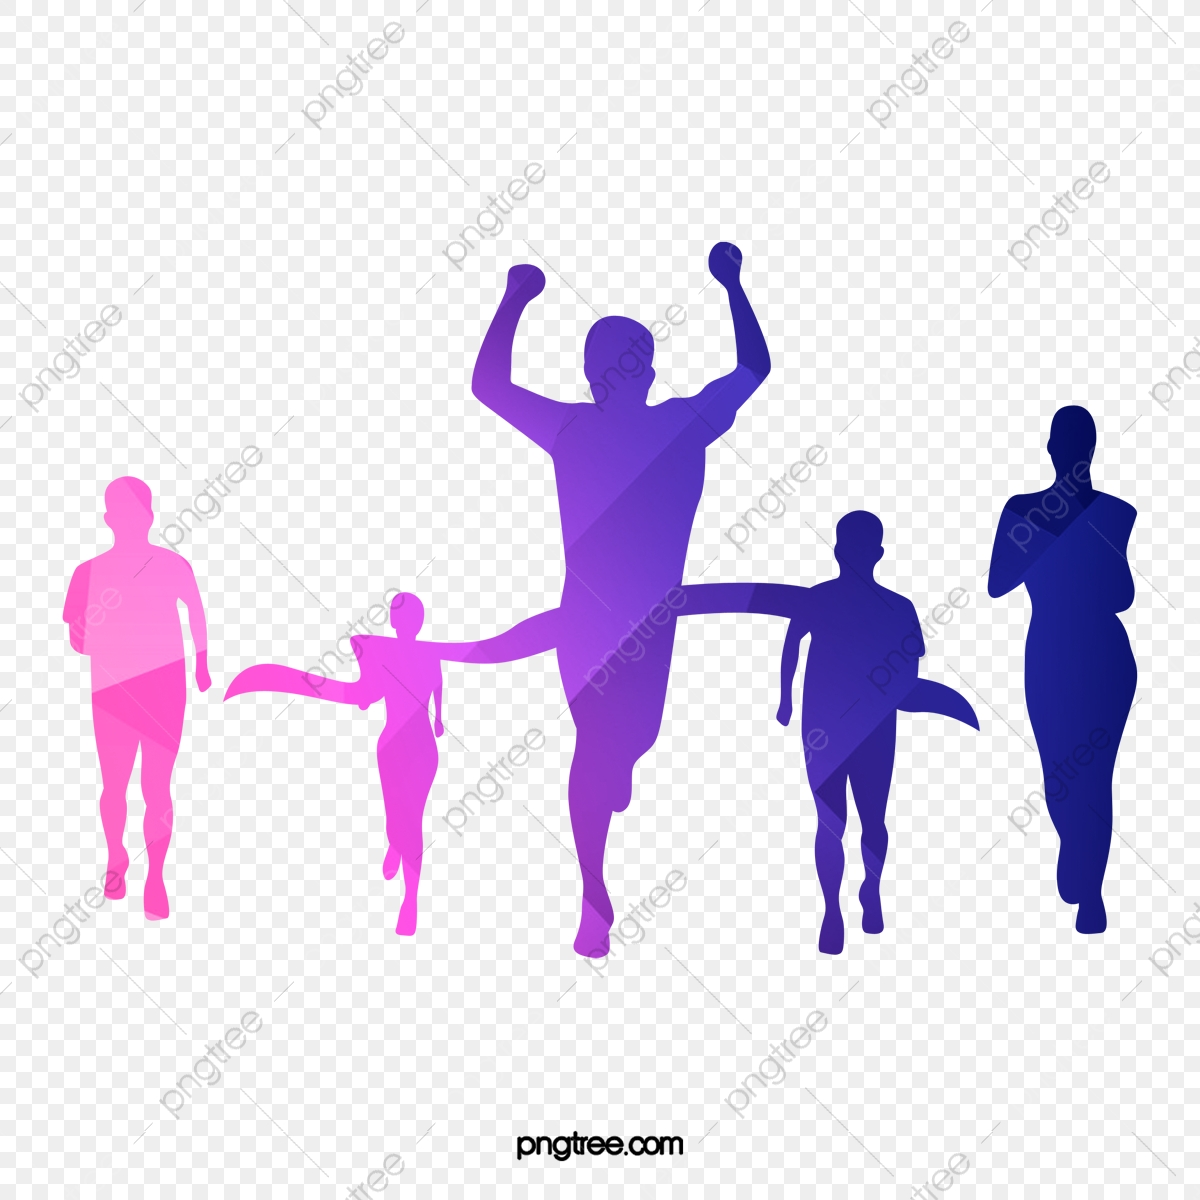 People Crossing The Finish Line, People Clipart, Line Clipart.